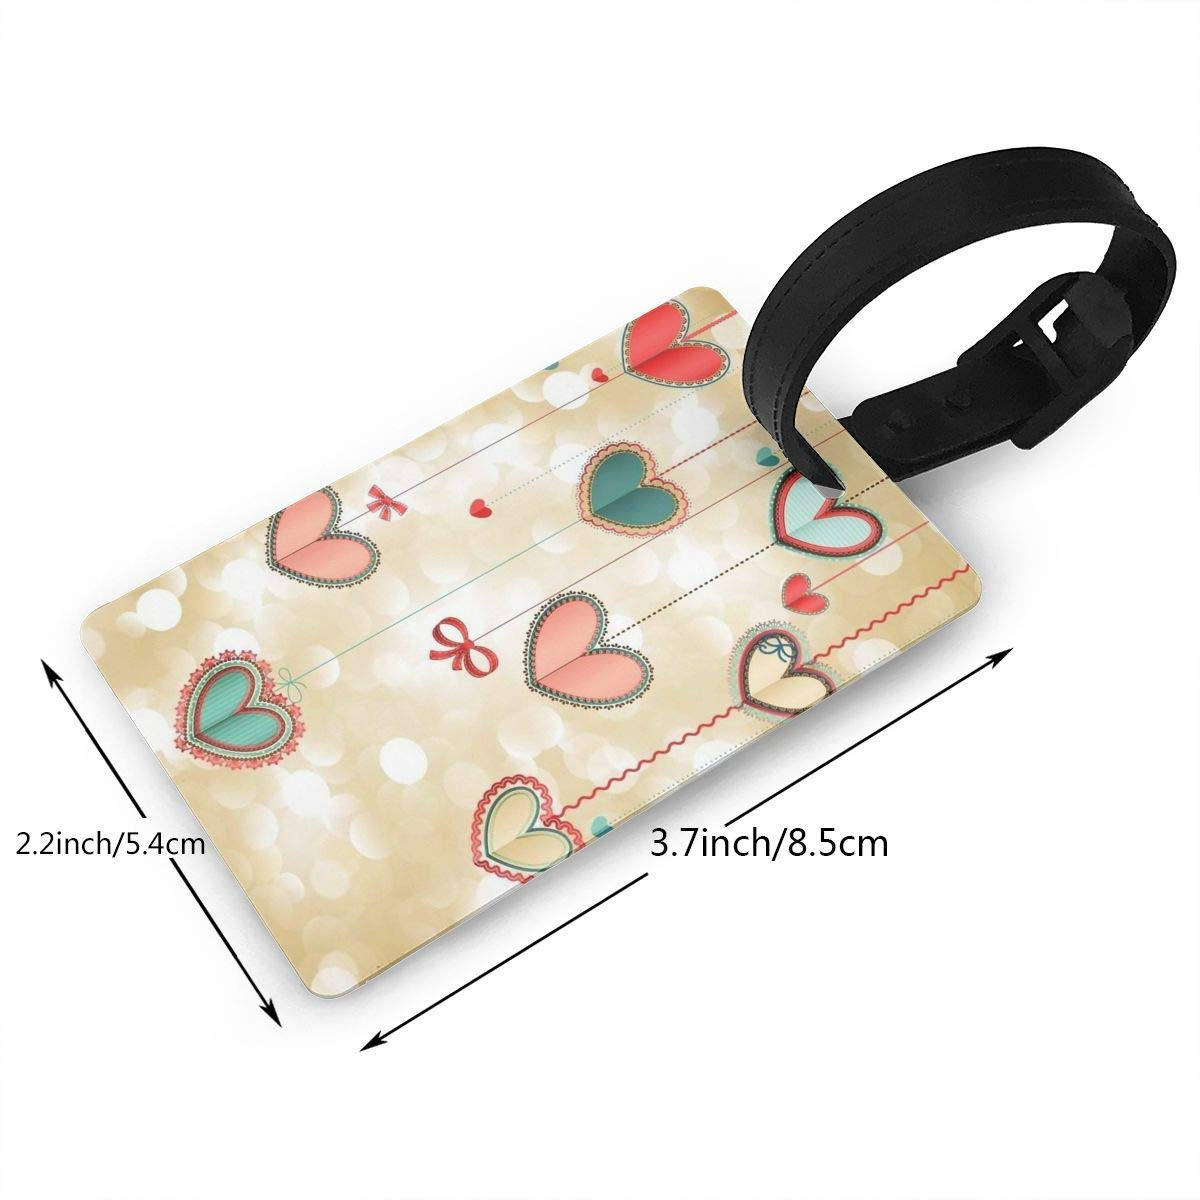 2 Pack Luggage Tags Love Hearts Cruise Luggage Tag For Travel Bag Suitcase Accessories